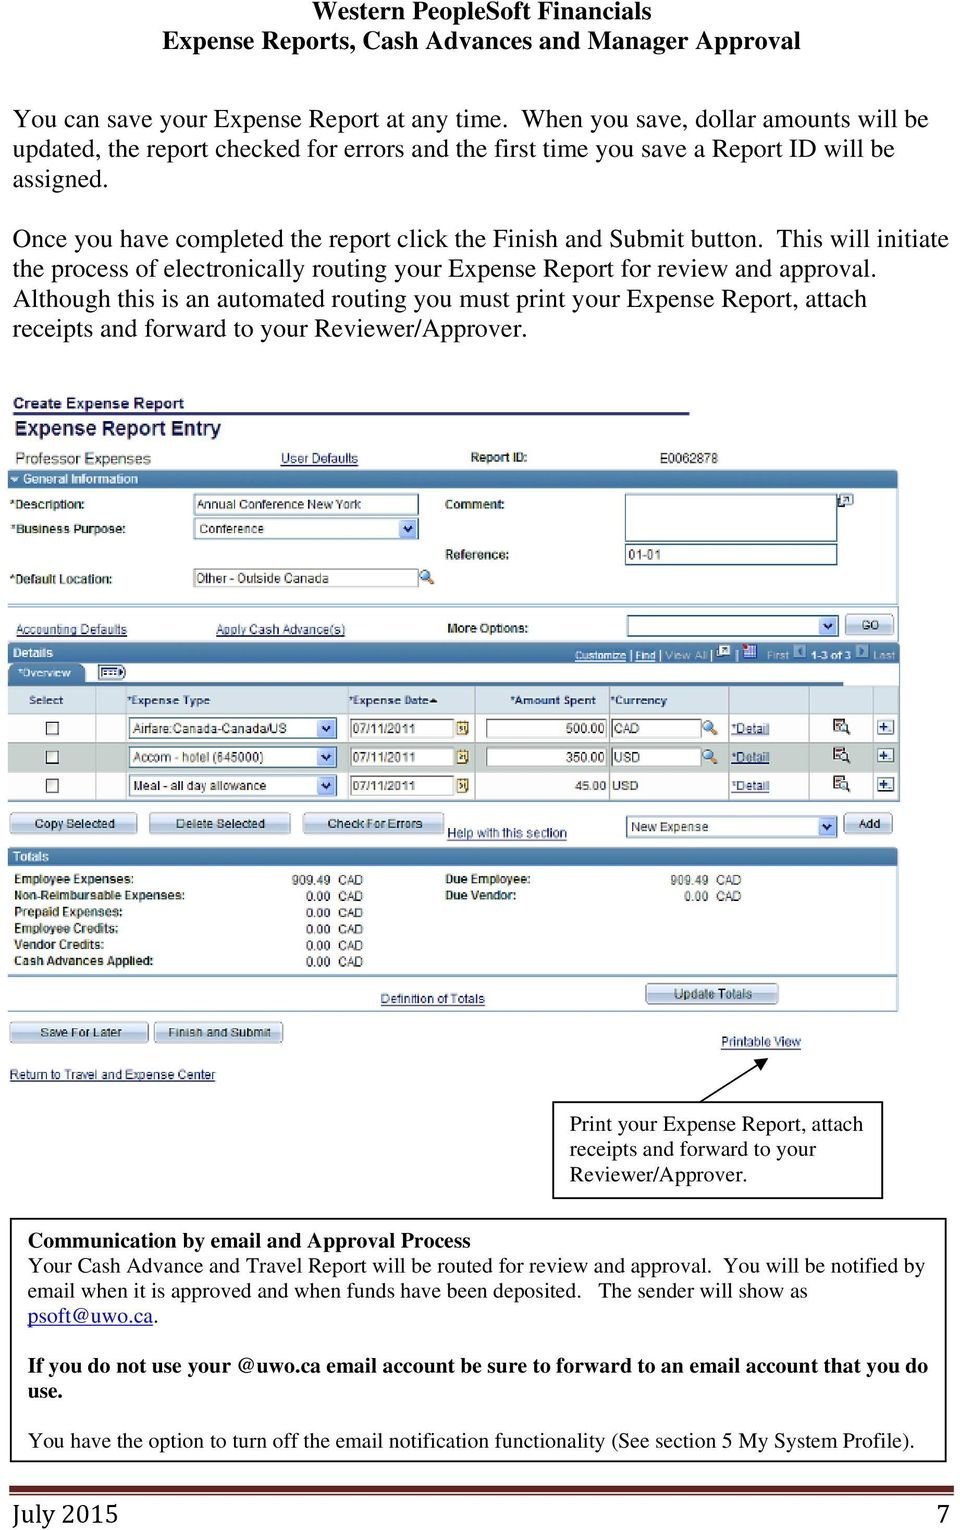 Although this is an automated routing you must print your Expense Report, attach receipts and forward to your Reviewer/Approver.